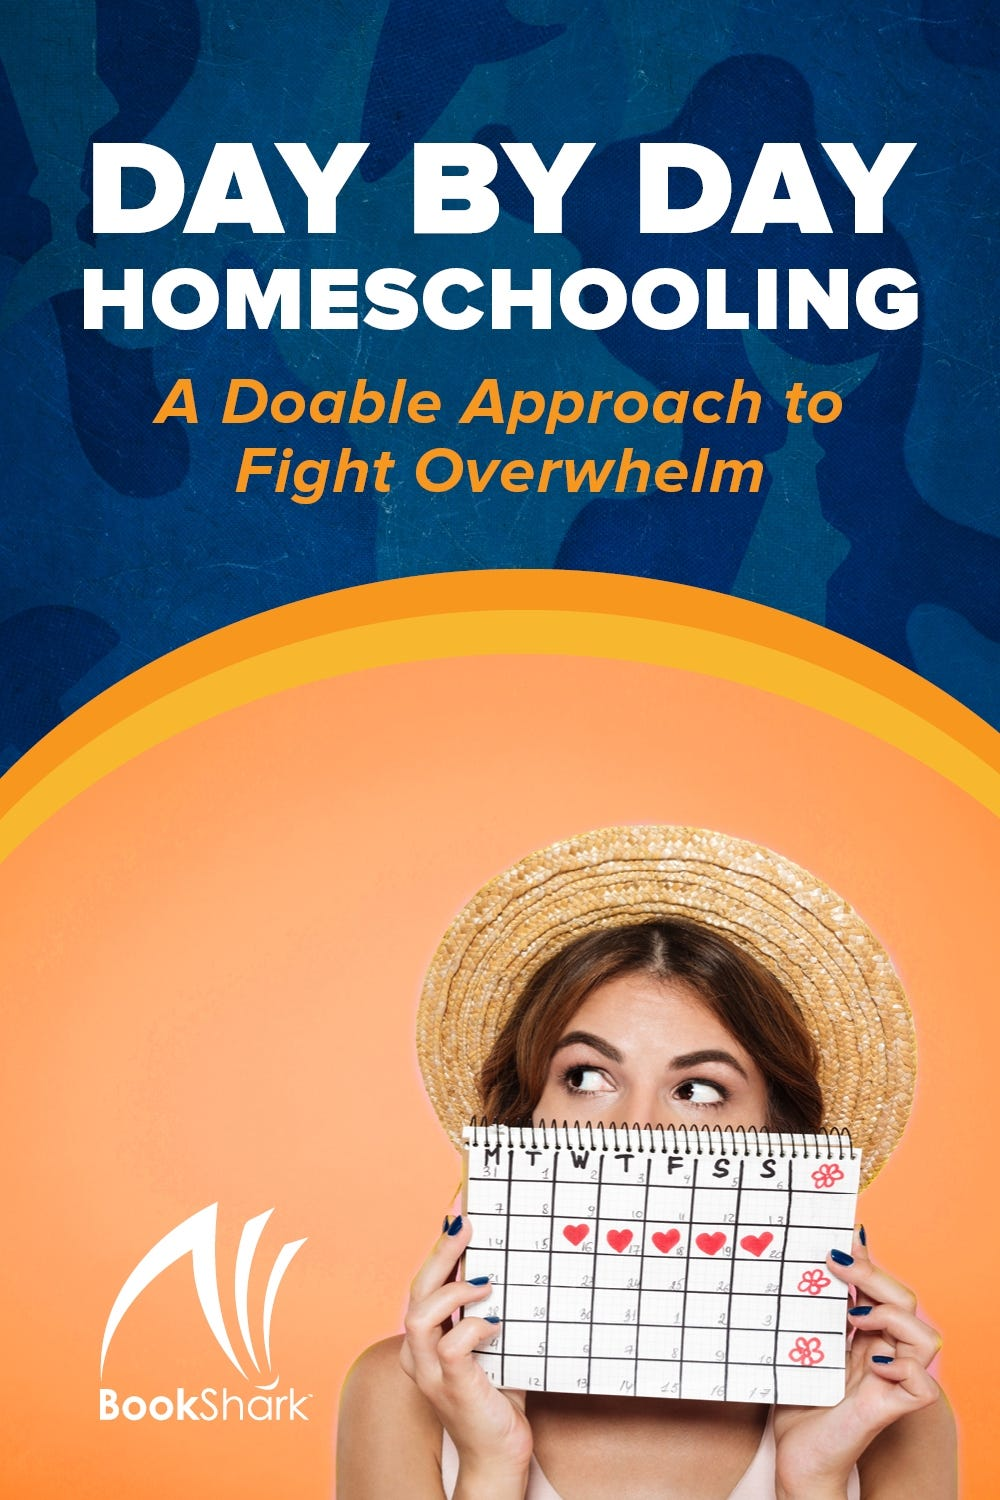 Day by Day Homeschooling: A Doable Approach to Fight Overwhelm